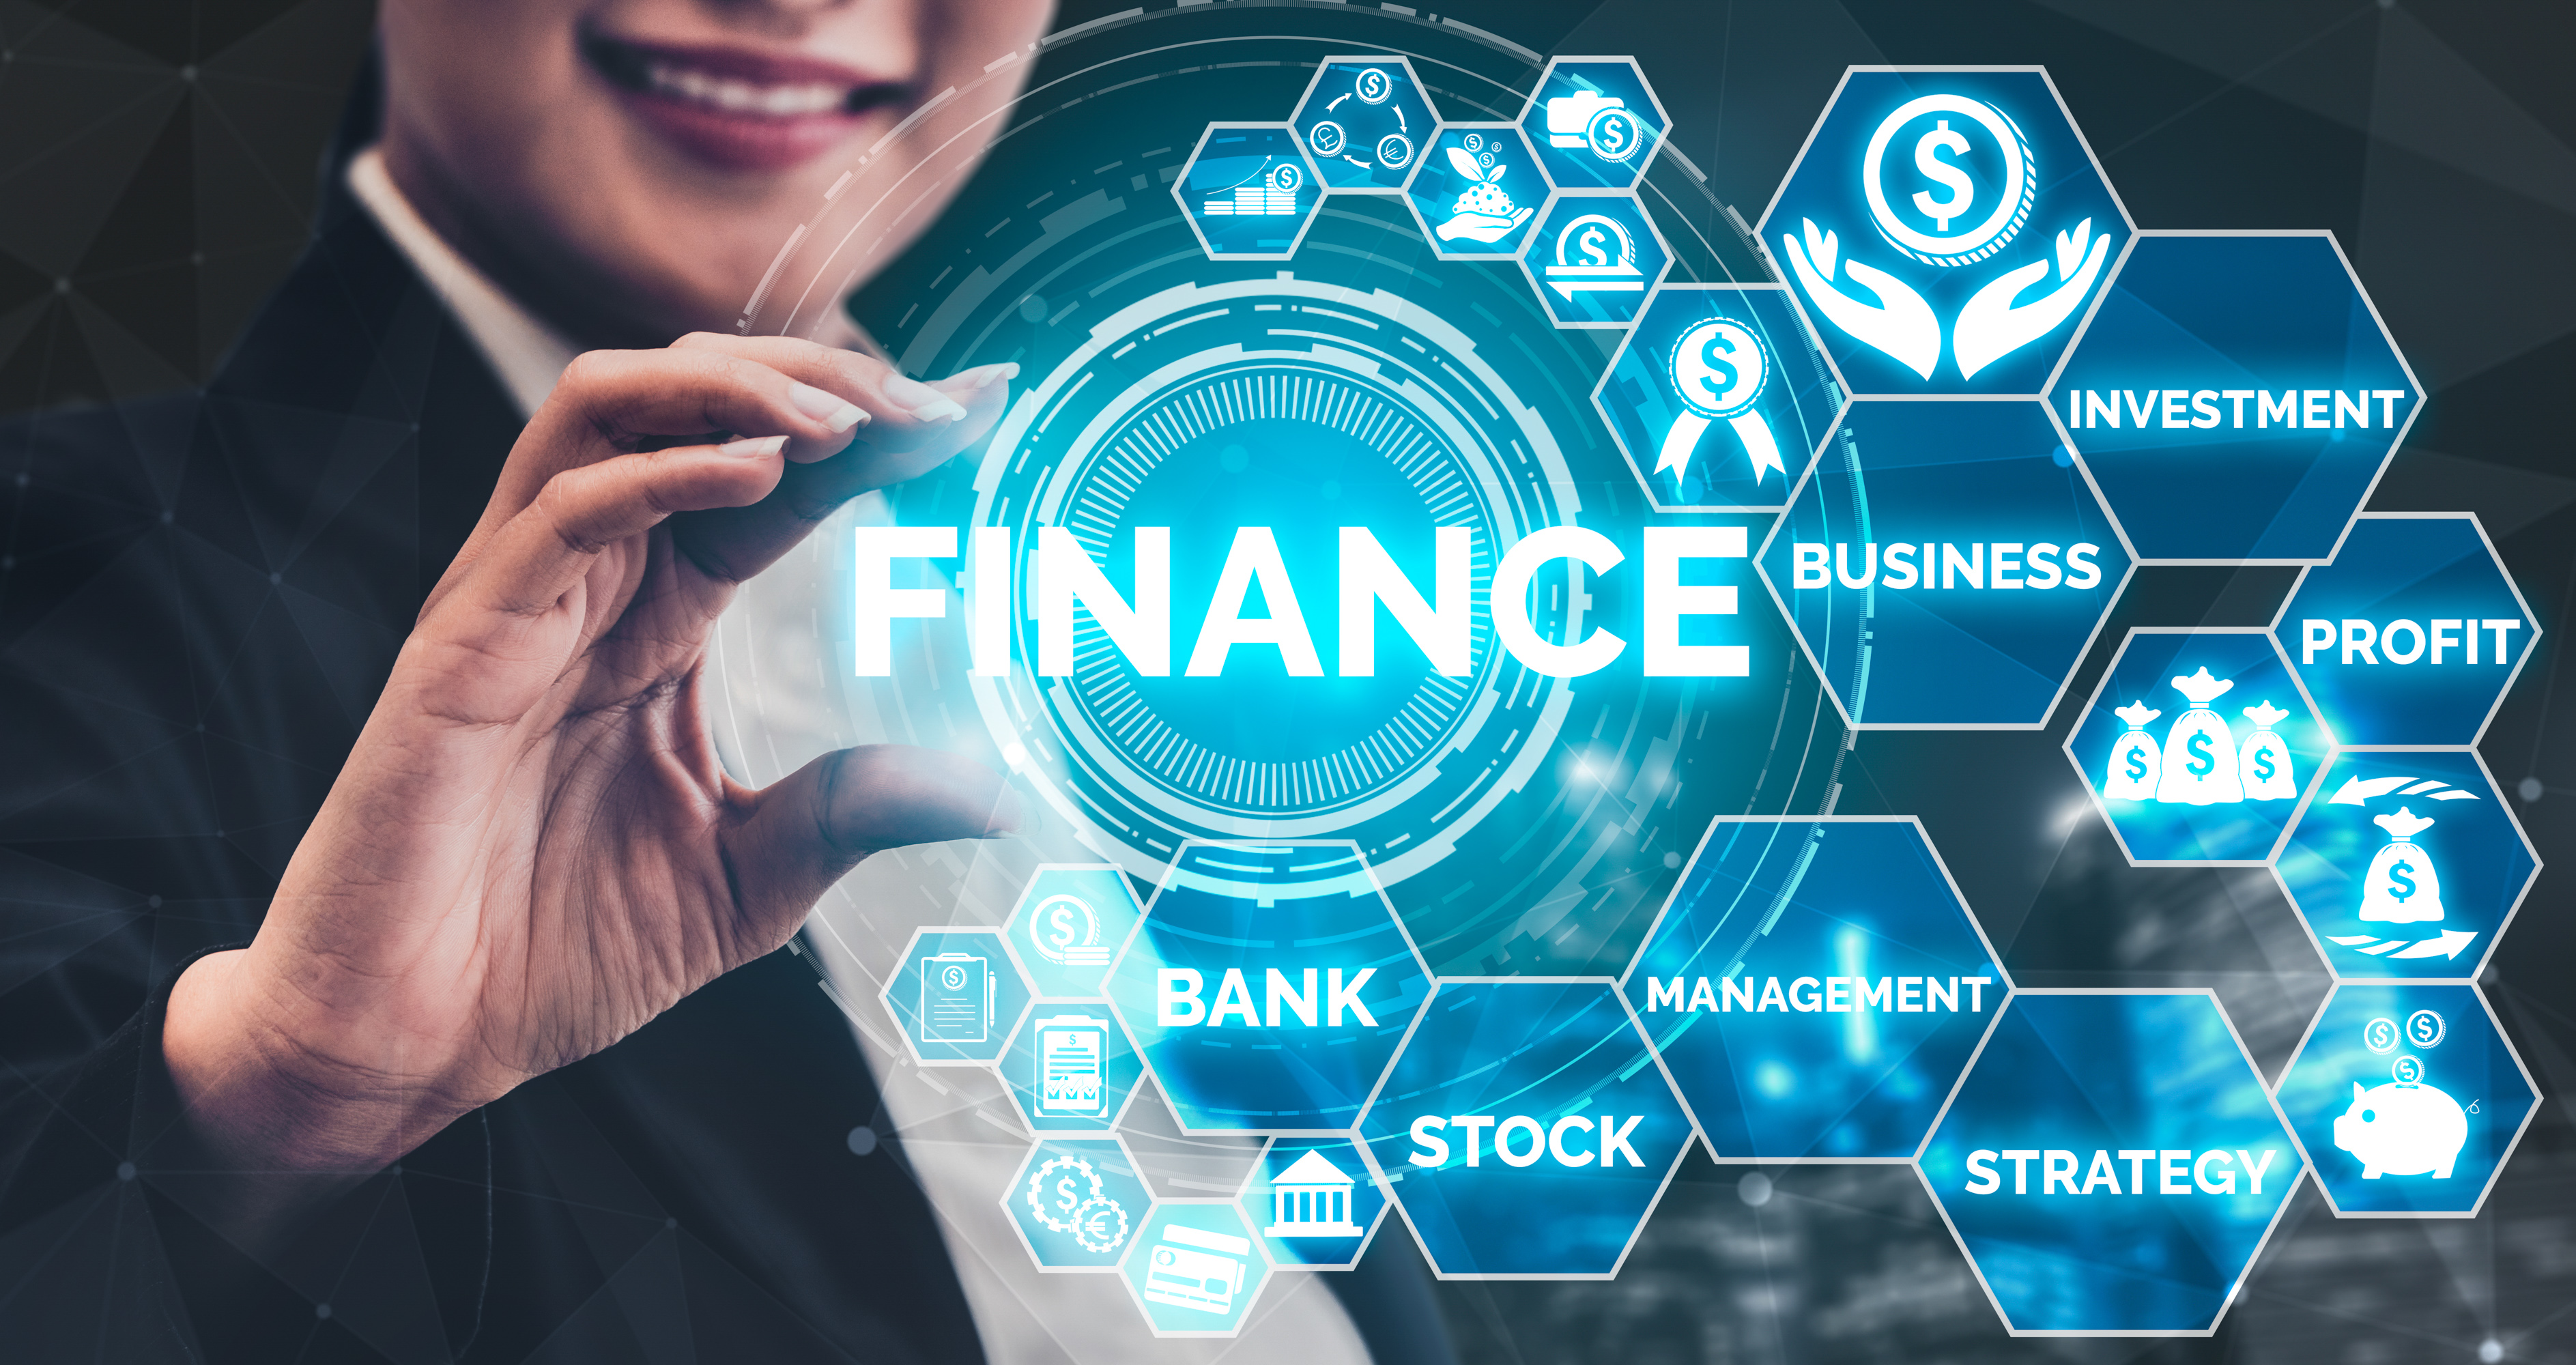 How is Fintech Disrupting the Finance Industry?